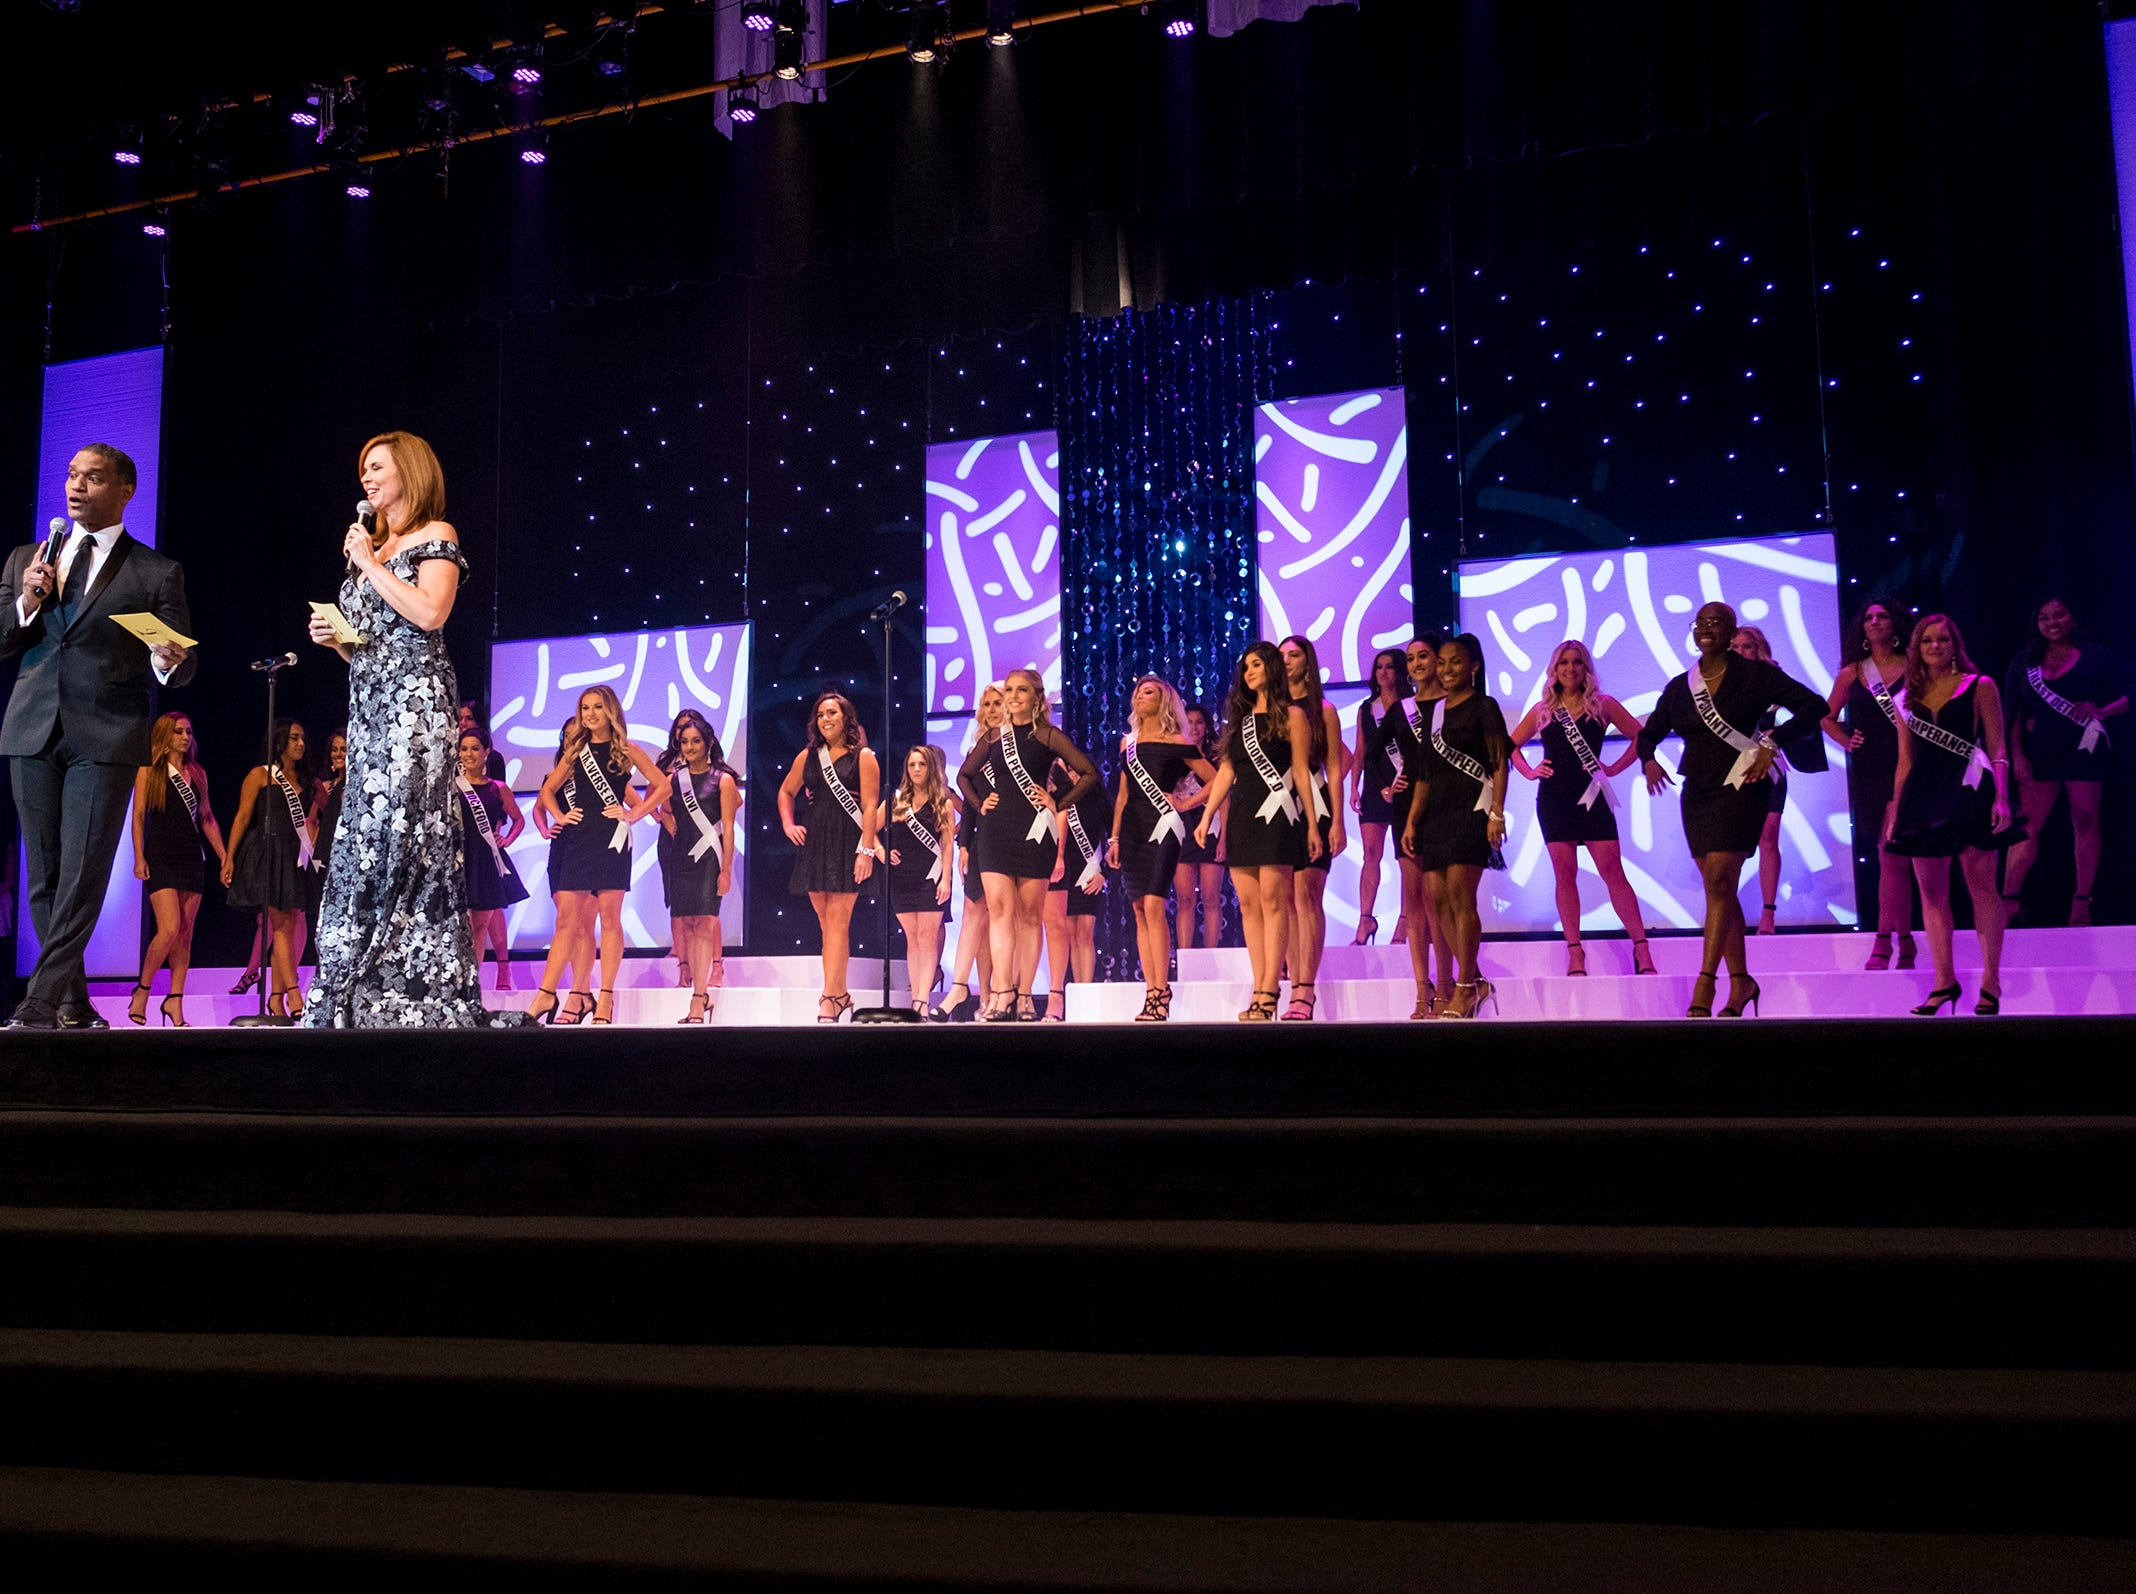 Cincinnati TV personalities Rob Williams, left, and Sheila Gray give opening remarks Saturday, Sept. 22, 2018 during the Miss Michigan USA pageant at McMorran Theater.